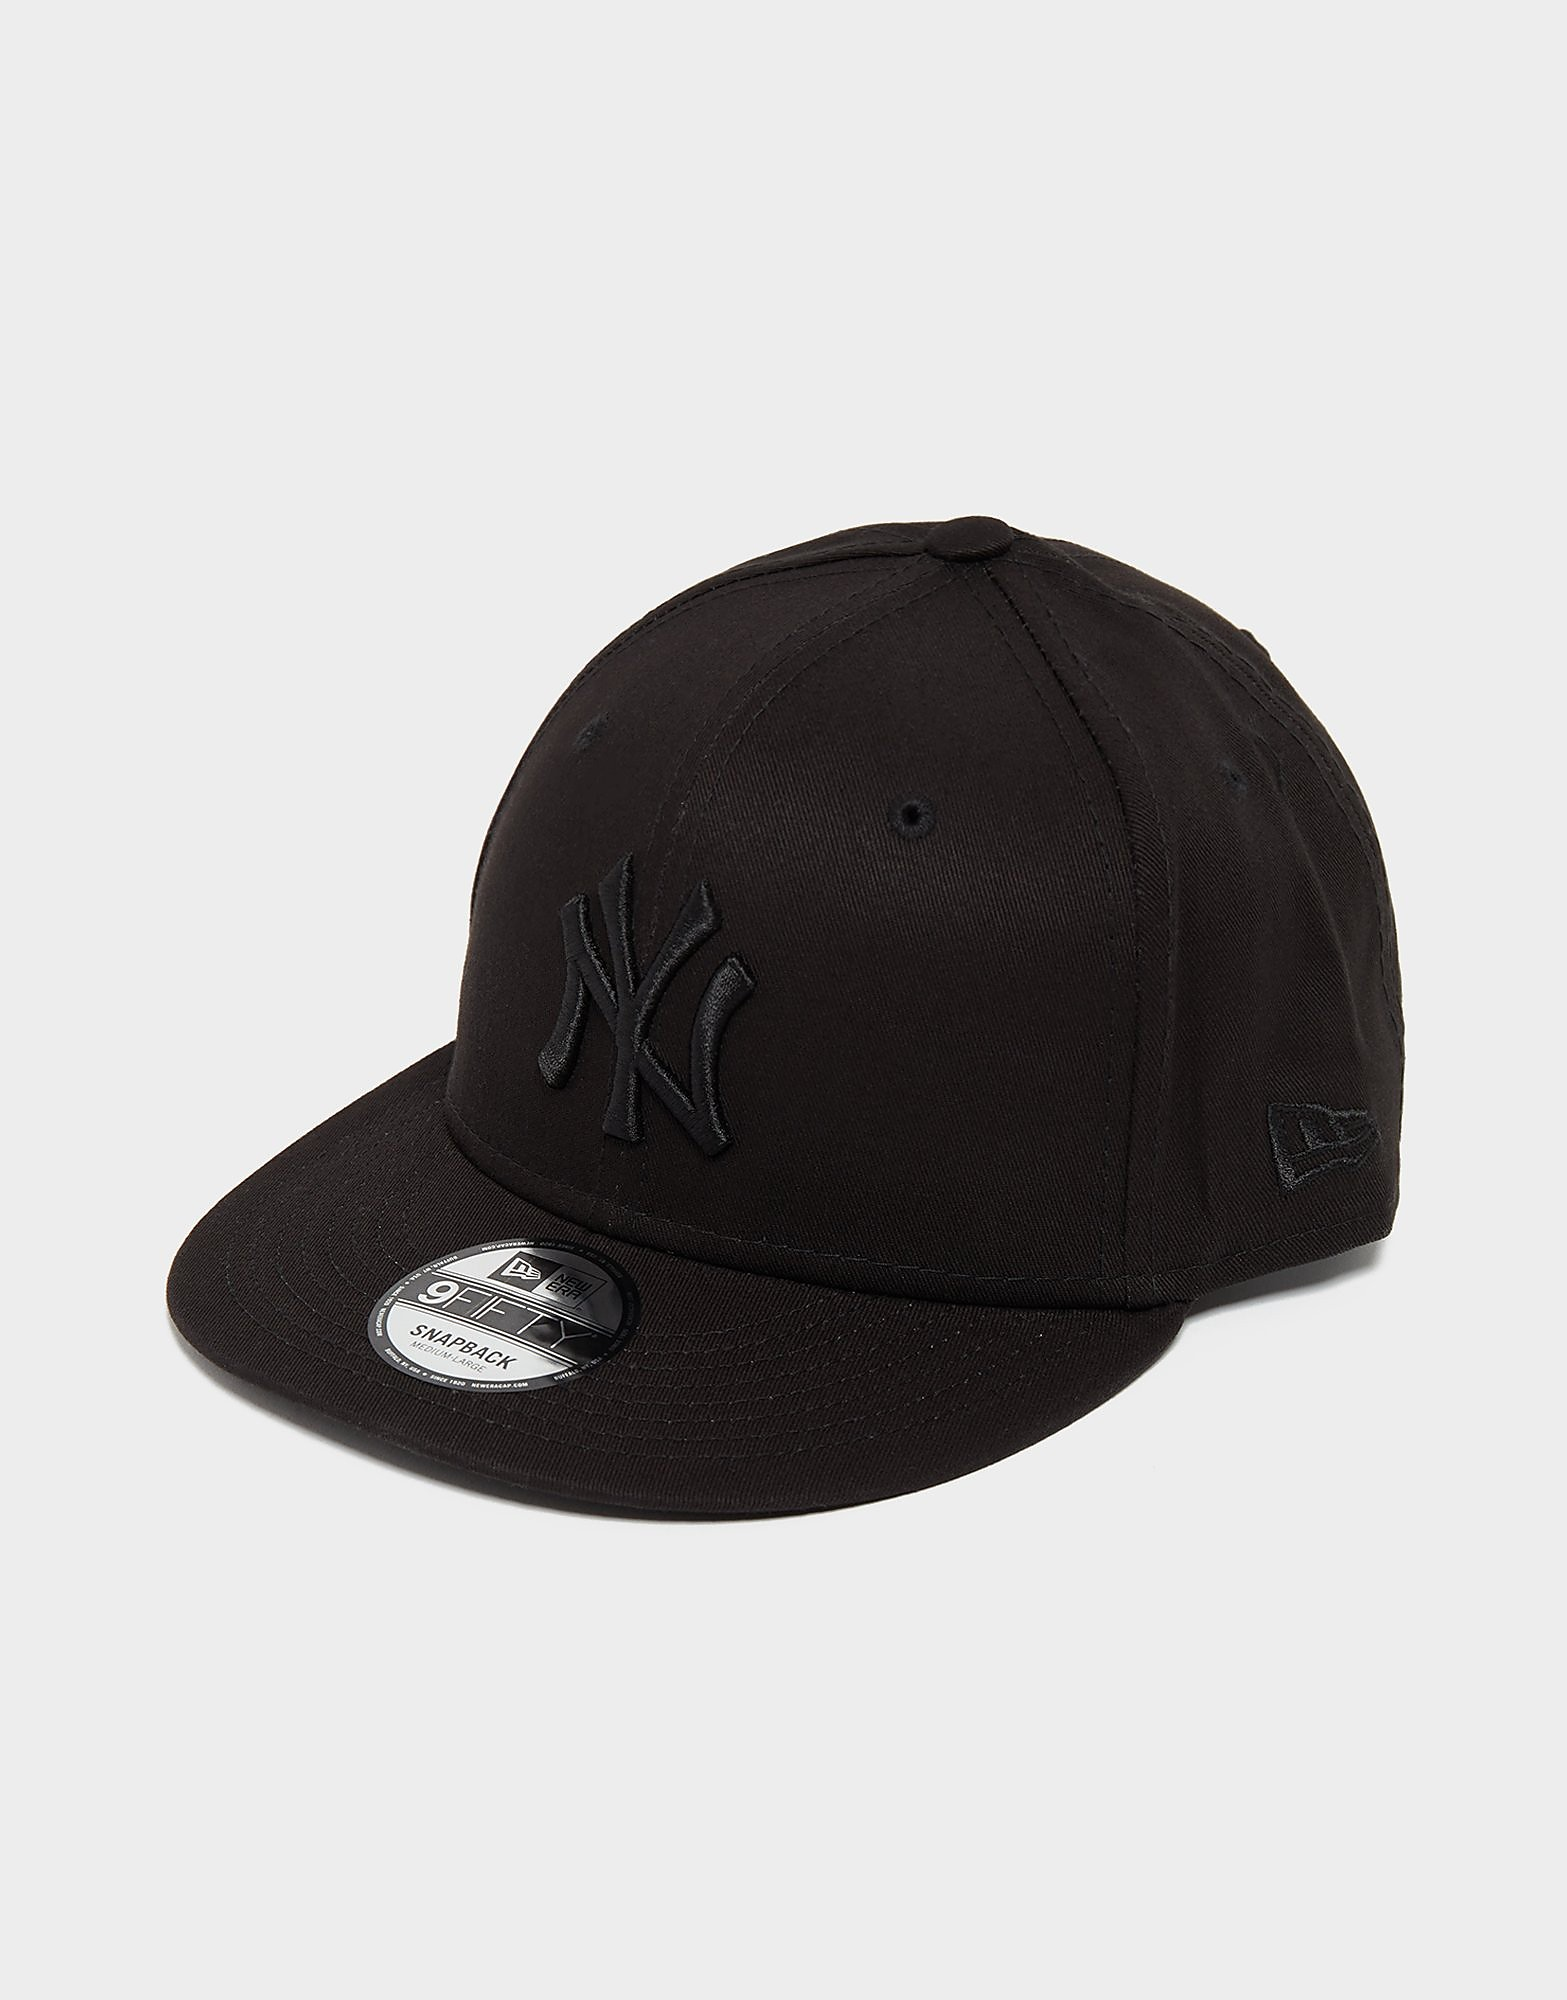 New Era MLB New York Yankees 9FIFTY Snapback keps